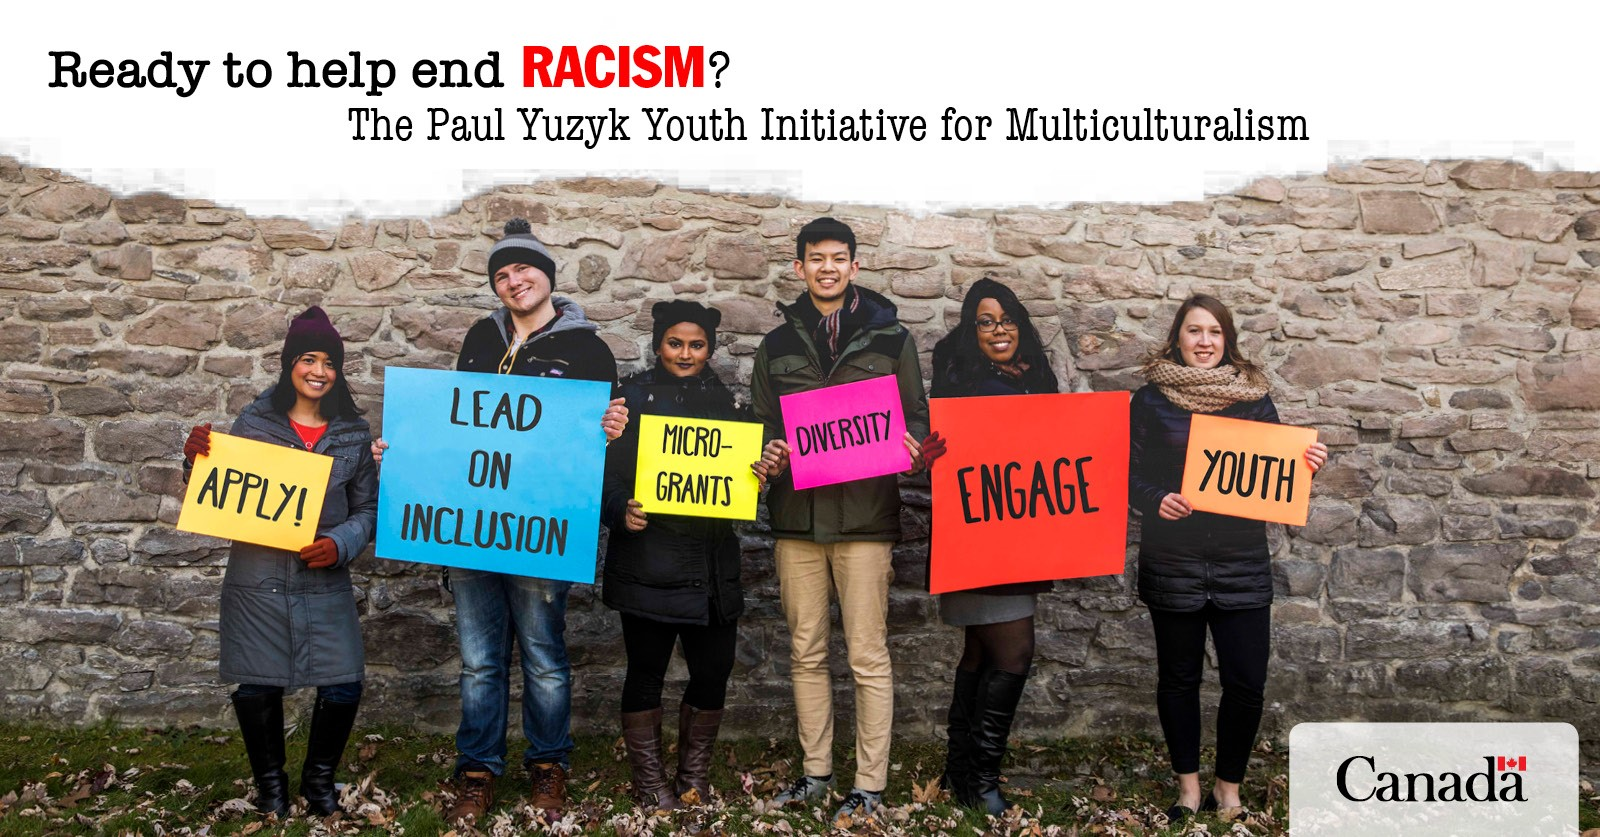 Paul Yuzyk Youth Initiative for Multiculturalism